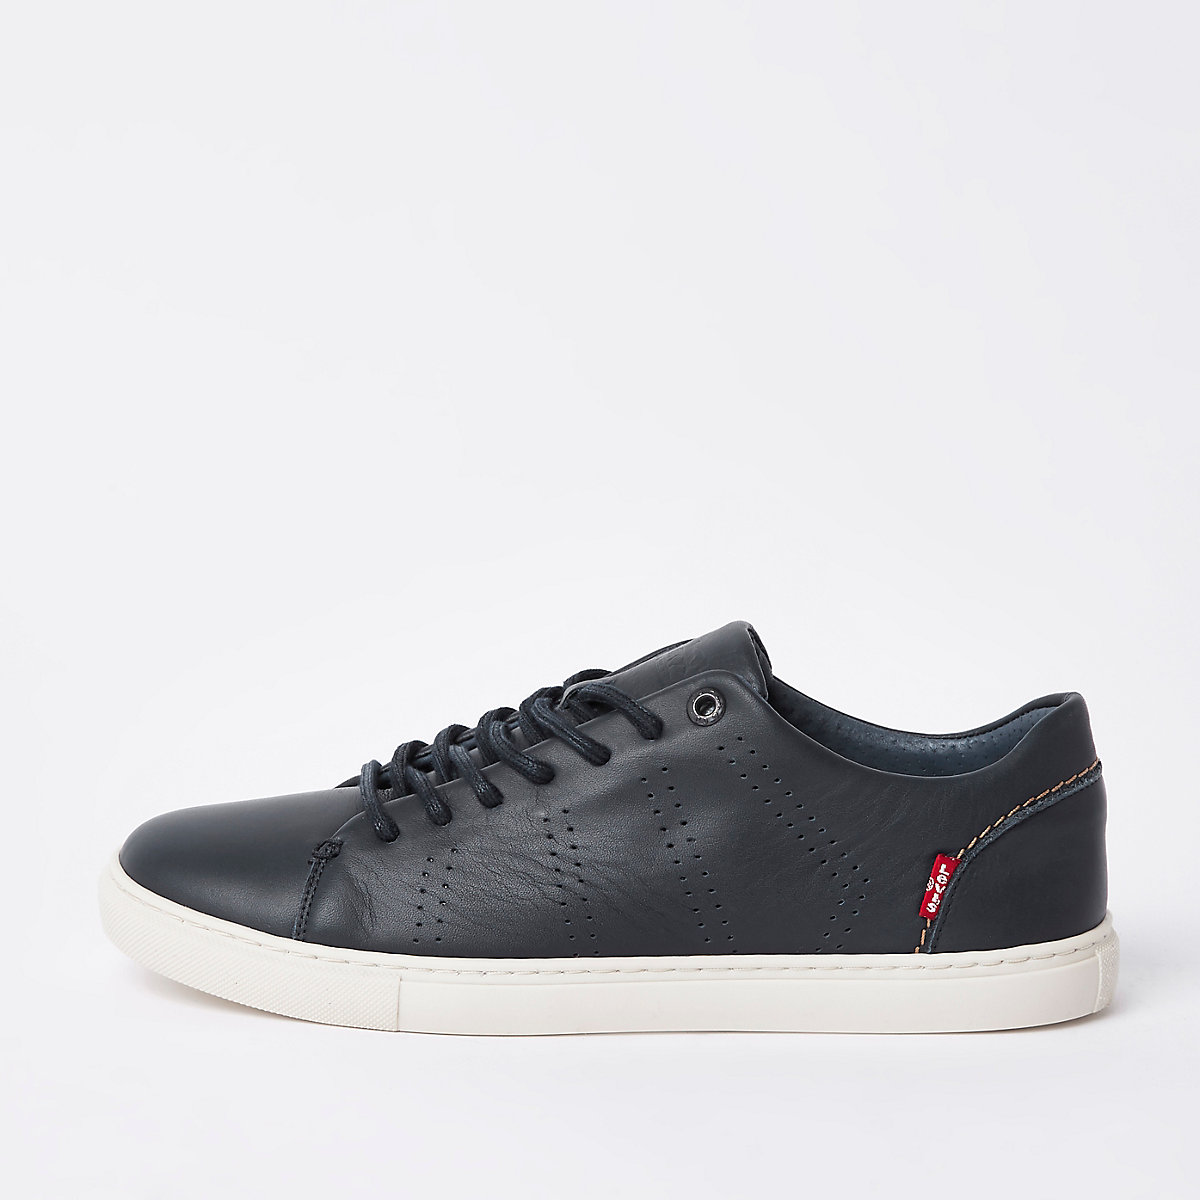 Levi's navy leather lace-up sneakers